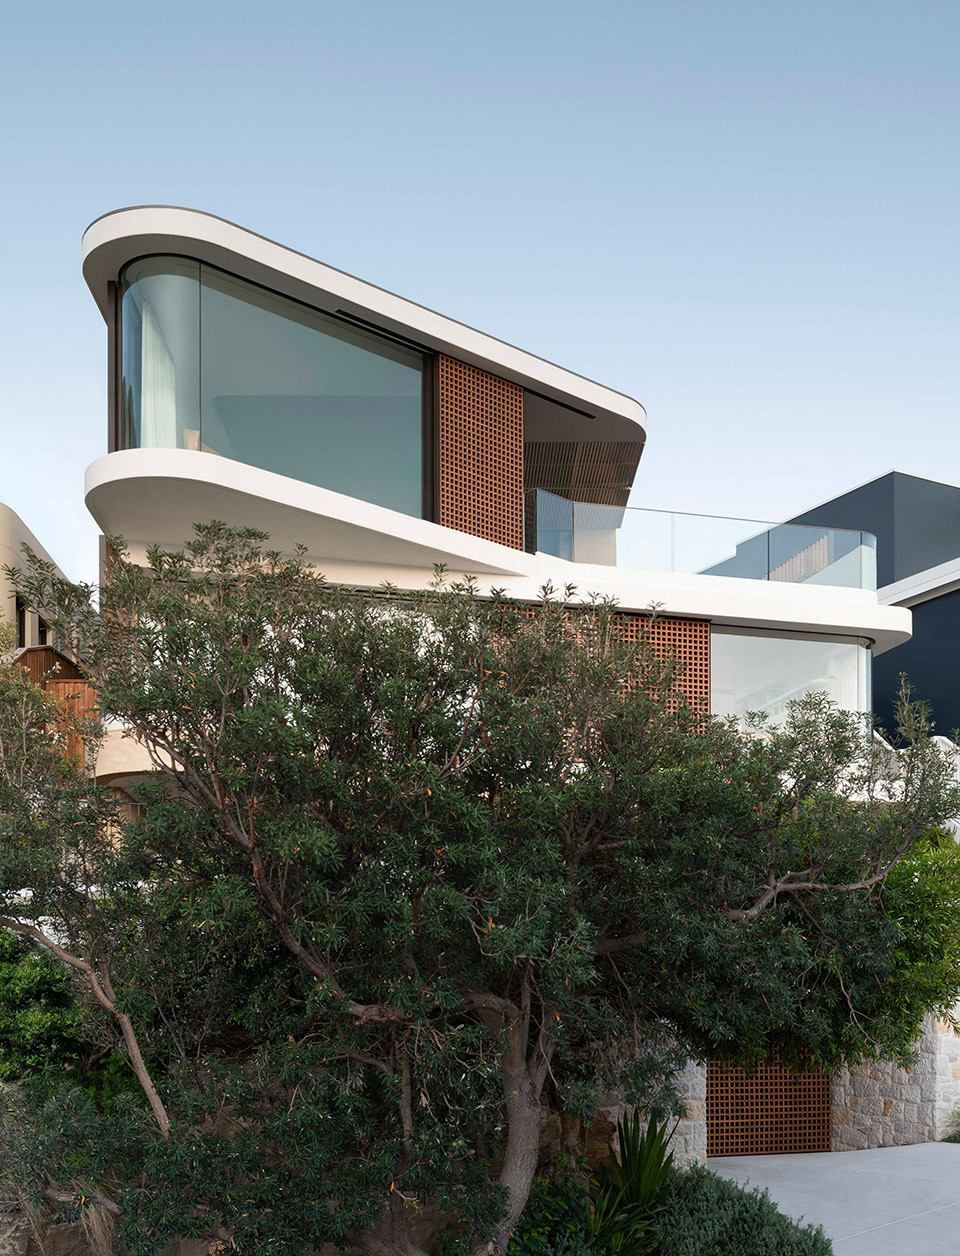 1-pacific-view-point-house-by-luigi-rosselli-architects.jpg